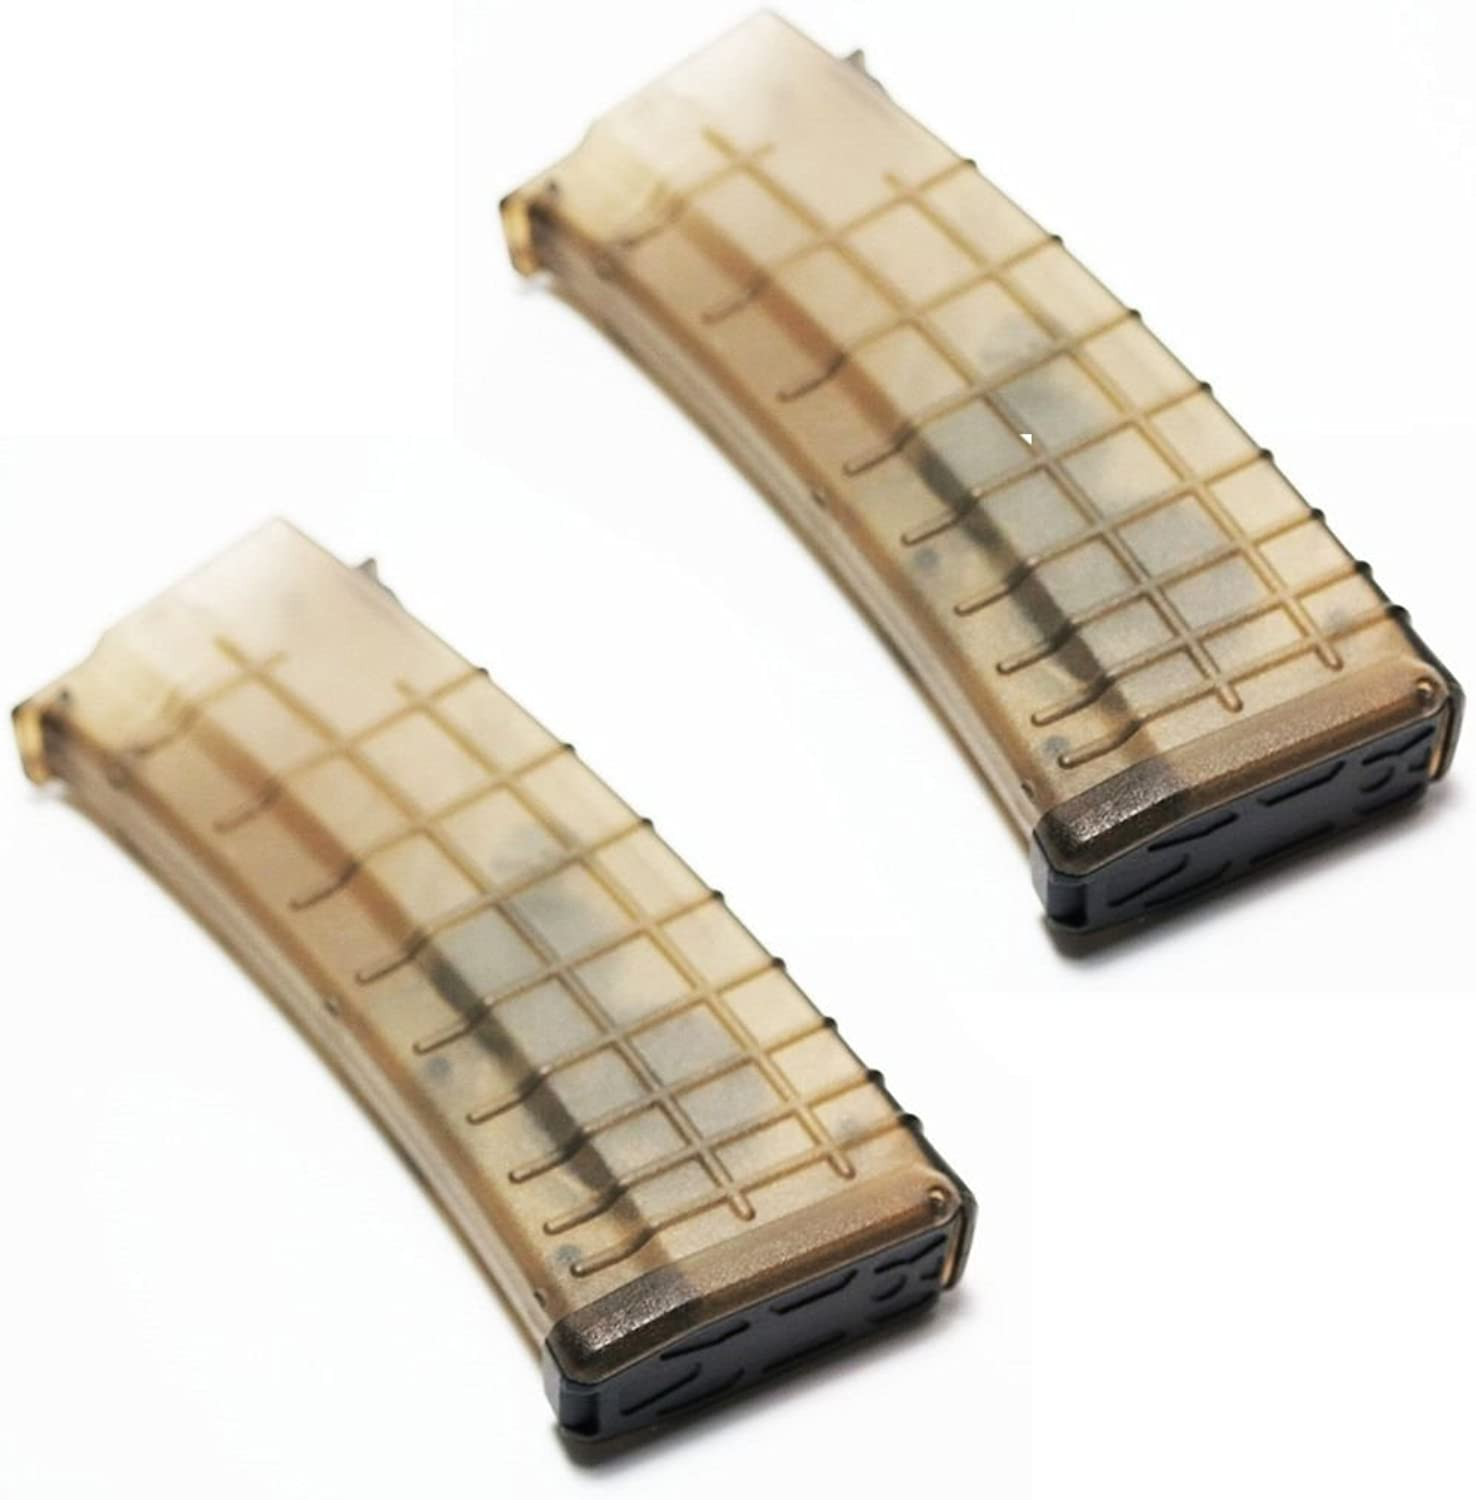 Airsoft Gear Parts Accessories 2pcs Pack CYMA 360rd Flash Mag Waffle Magazine for AKSeries AEG Semi Transparent